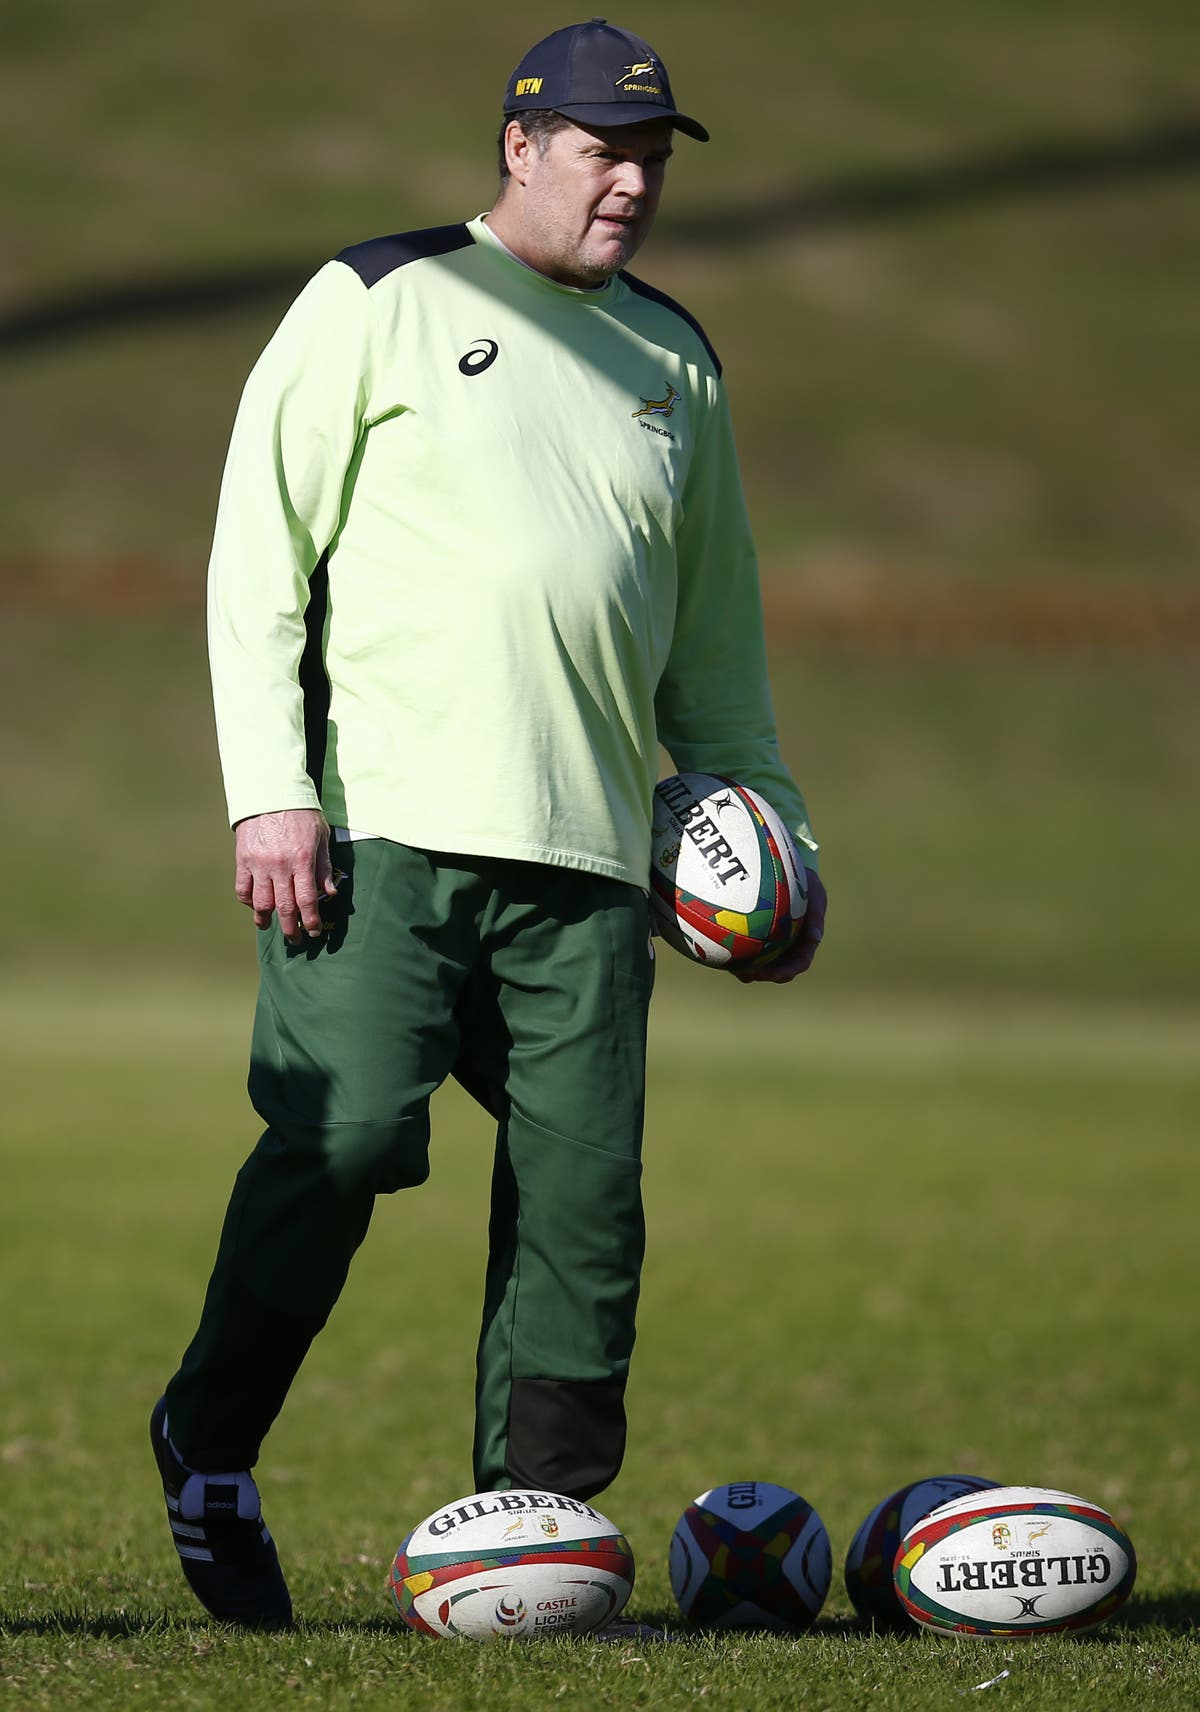 Jacques Nienaber hints Rassie Erasmus' rant allowed Springboks to focus on rugby